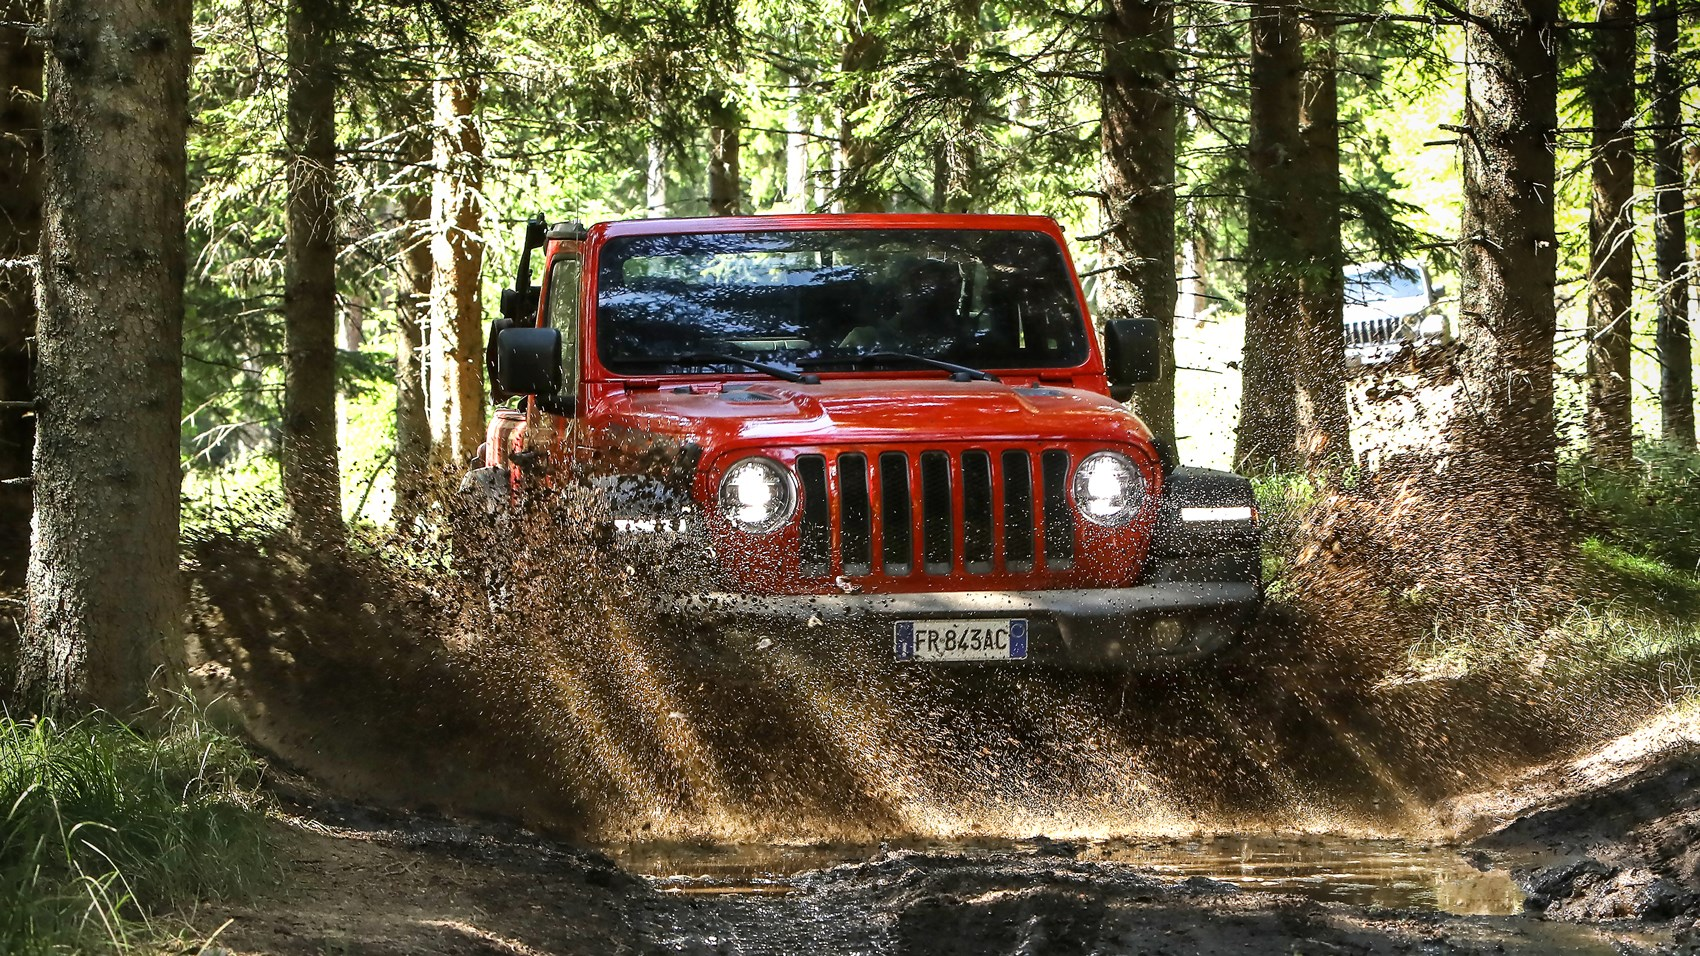 Wrangler Rubicon off-road